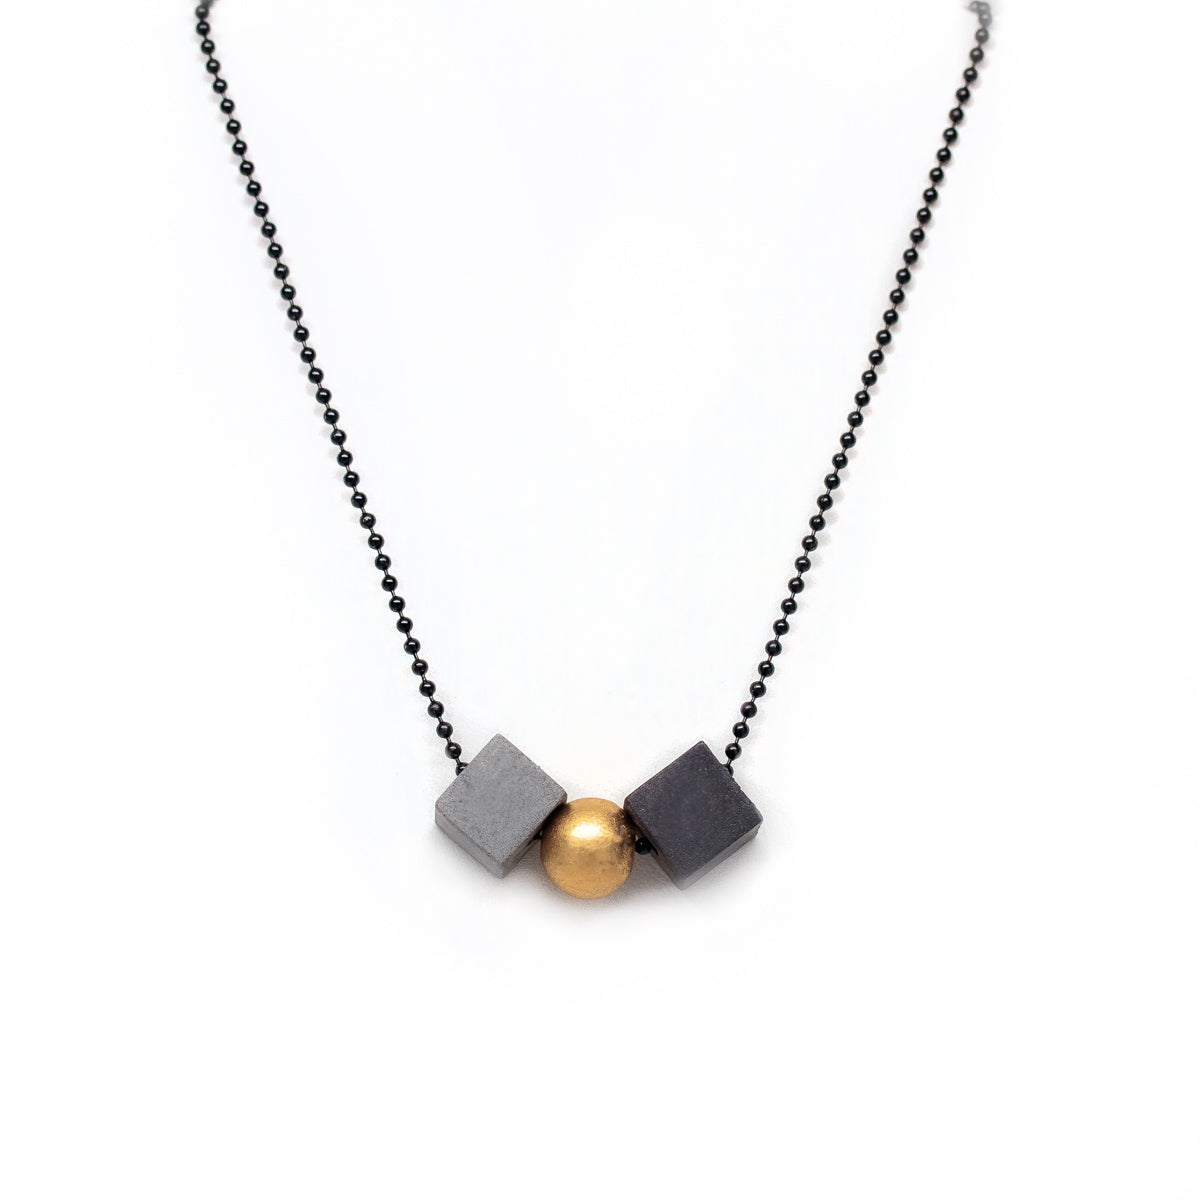 Concrete Mixed Geometric Necklace B-G-C